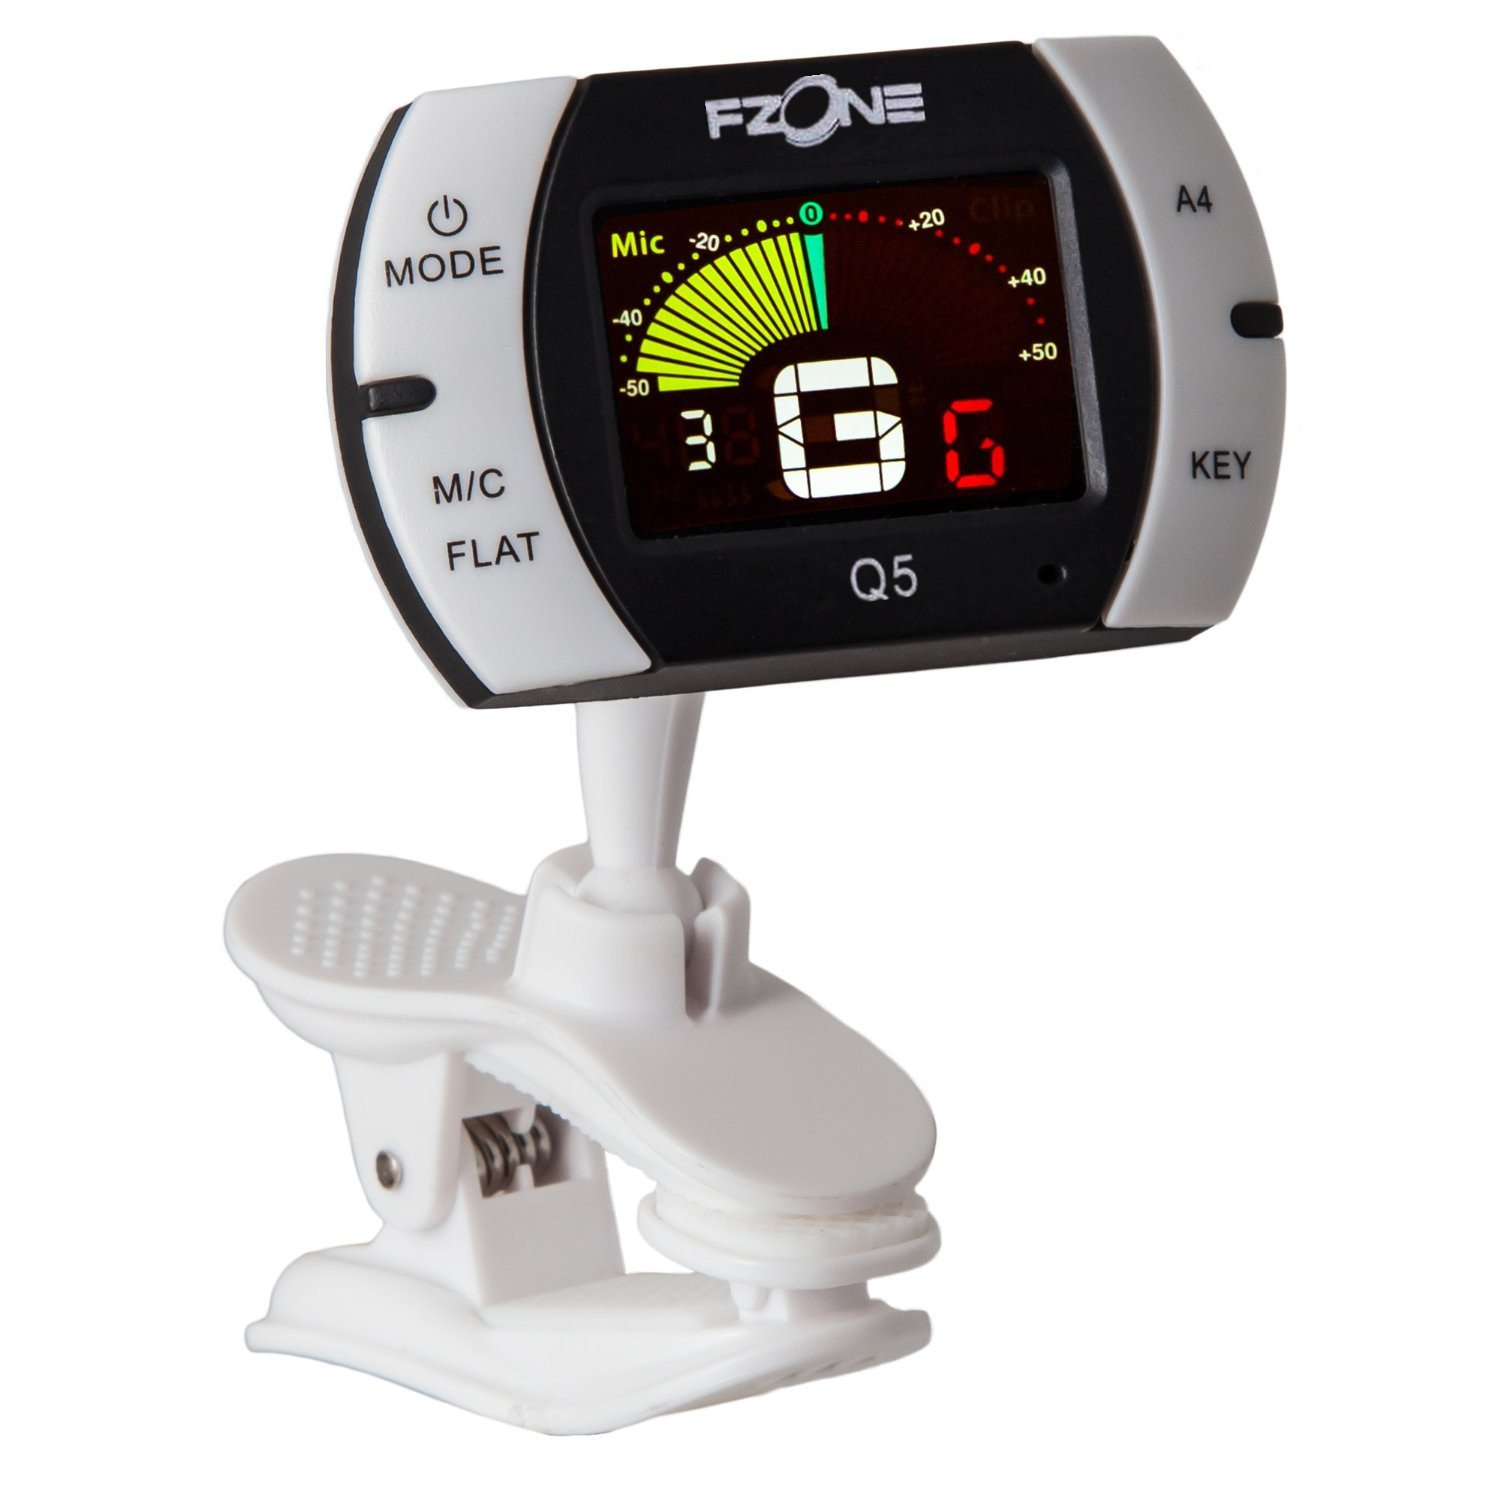 Fzone FT-Q5 Chromatic Clip-on Tuner for Guitar, Bass, Violin, Ukulele, Banjo, Brass and Woodwind Instruments - Bright Full Color Display - Extra Mic Function - A4 Pitch Calibration - Transposition